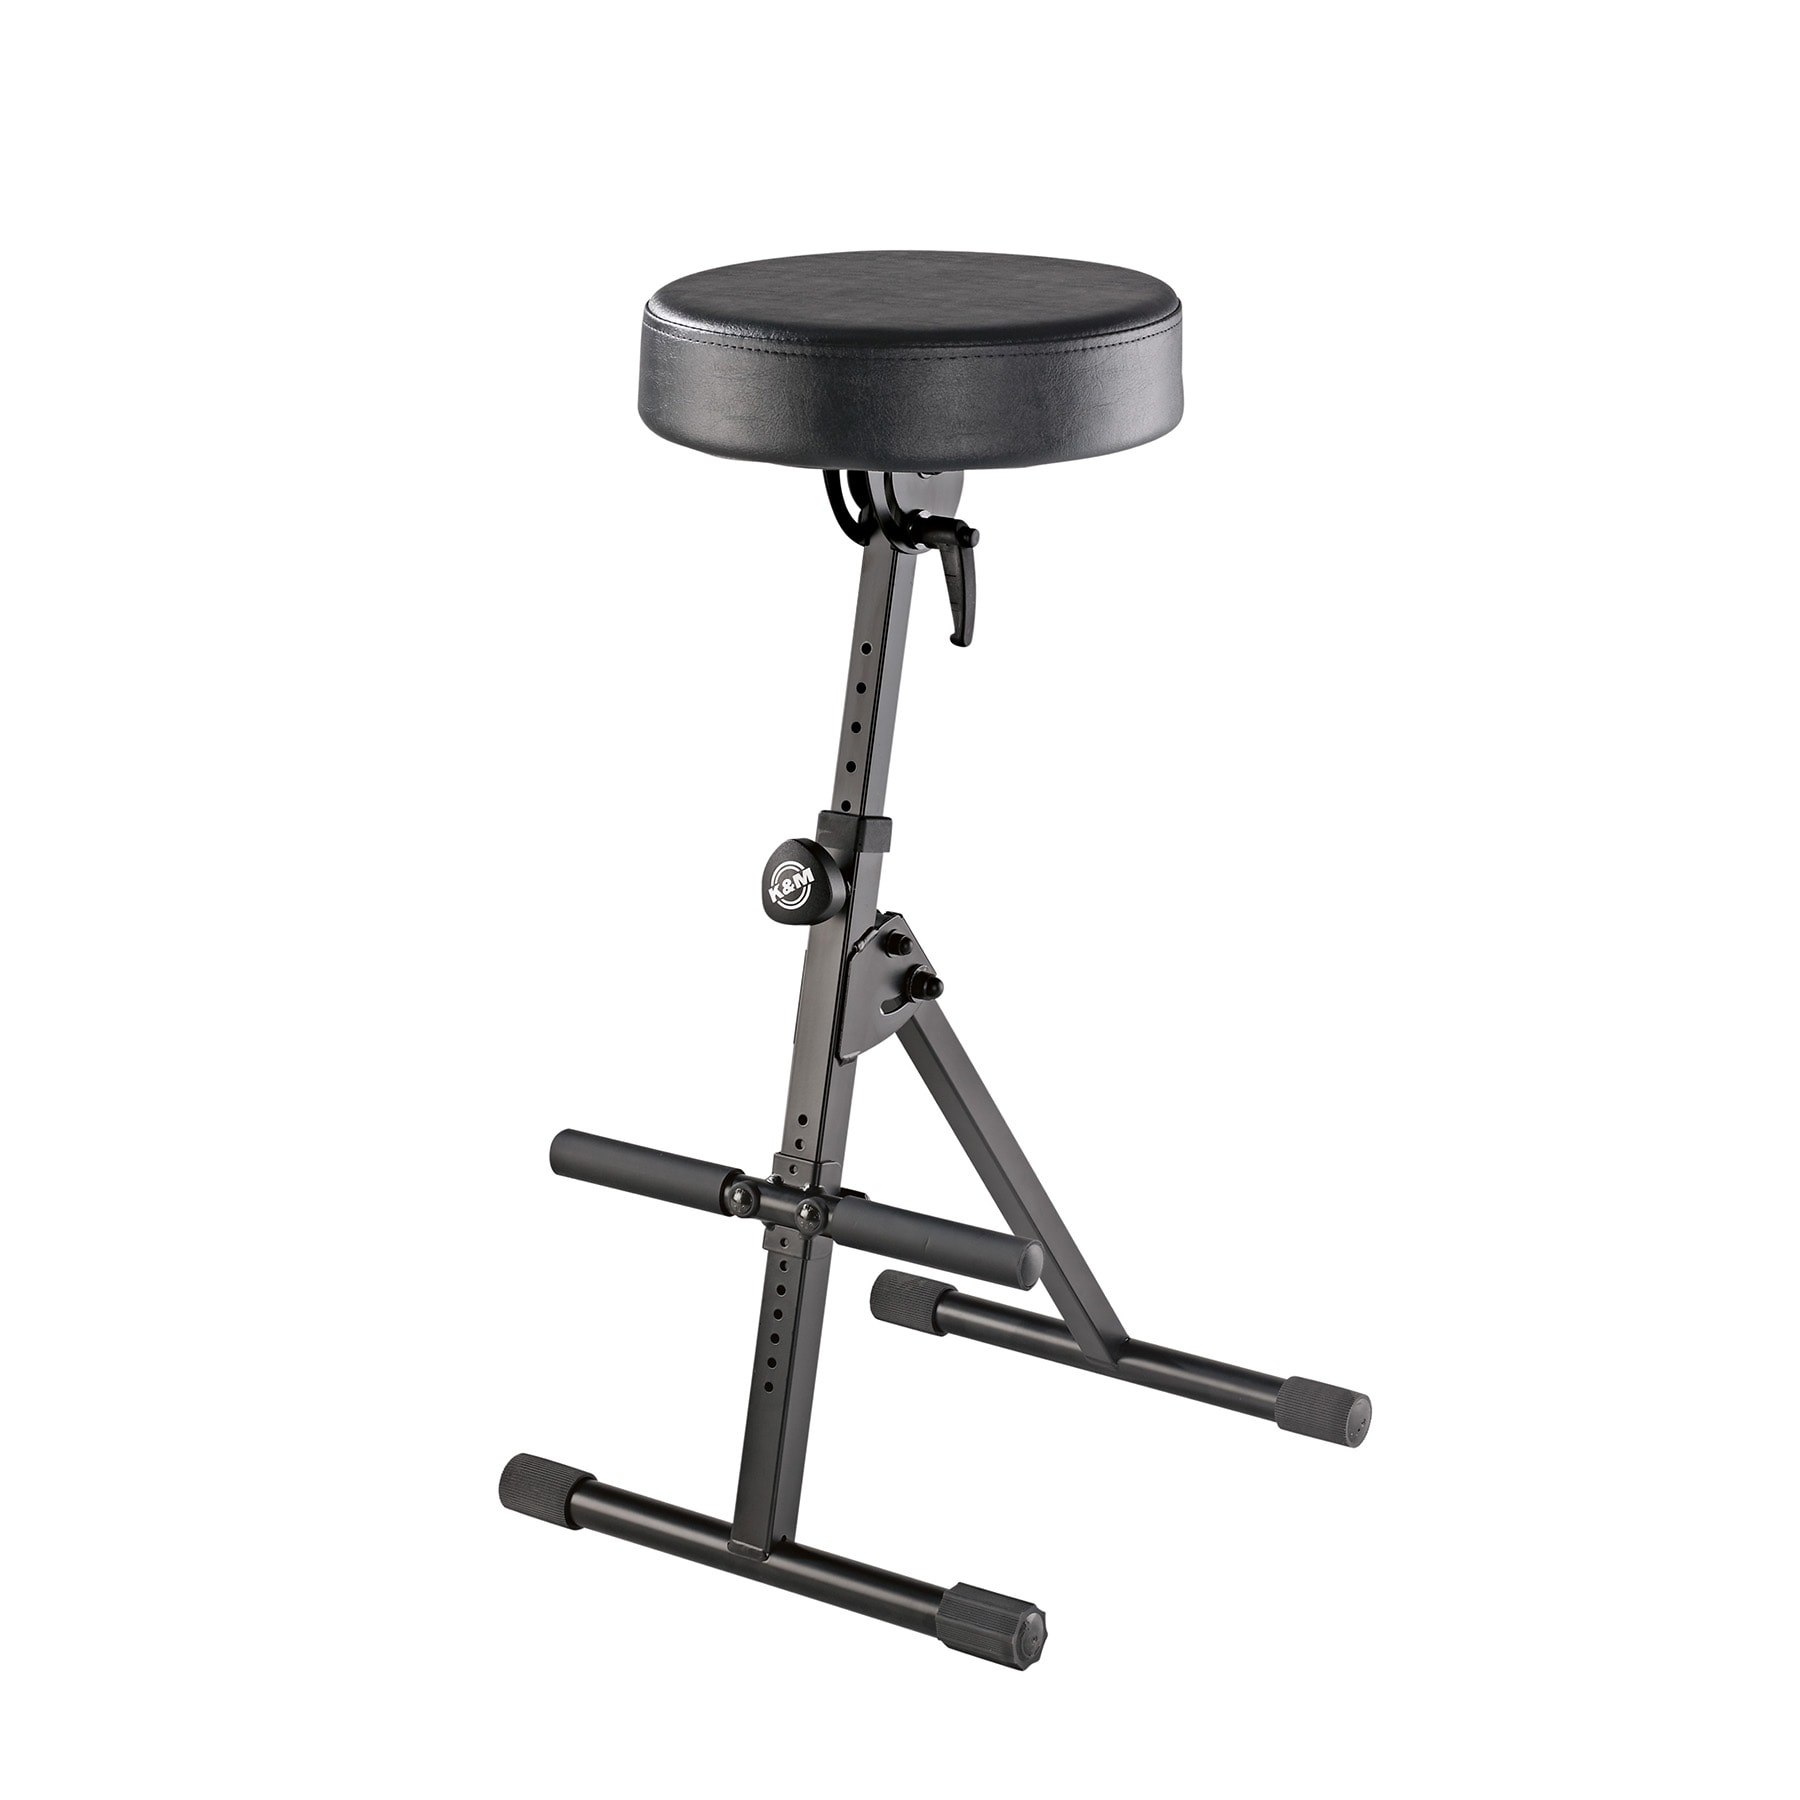 KM14061 - Pneumatic stool